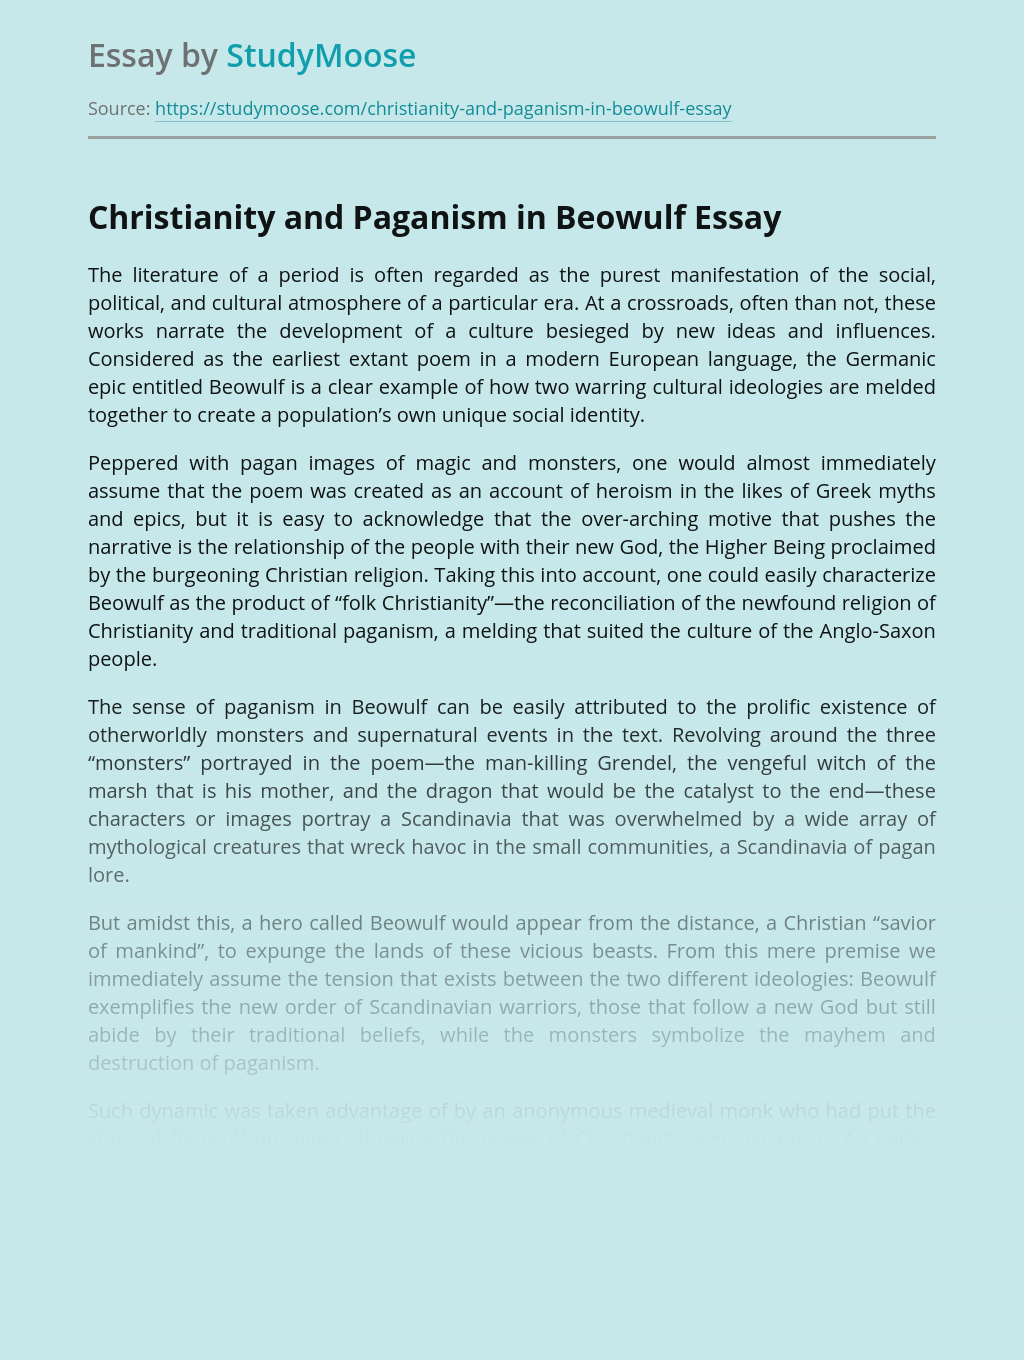 Christianity and Paganism in Beowulf